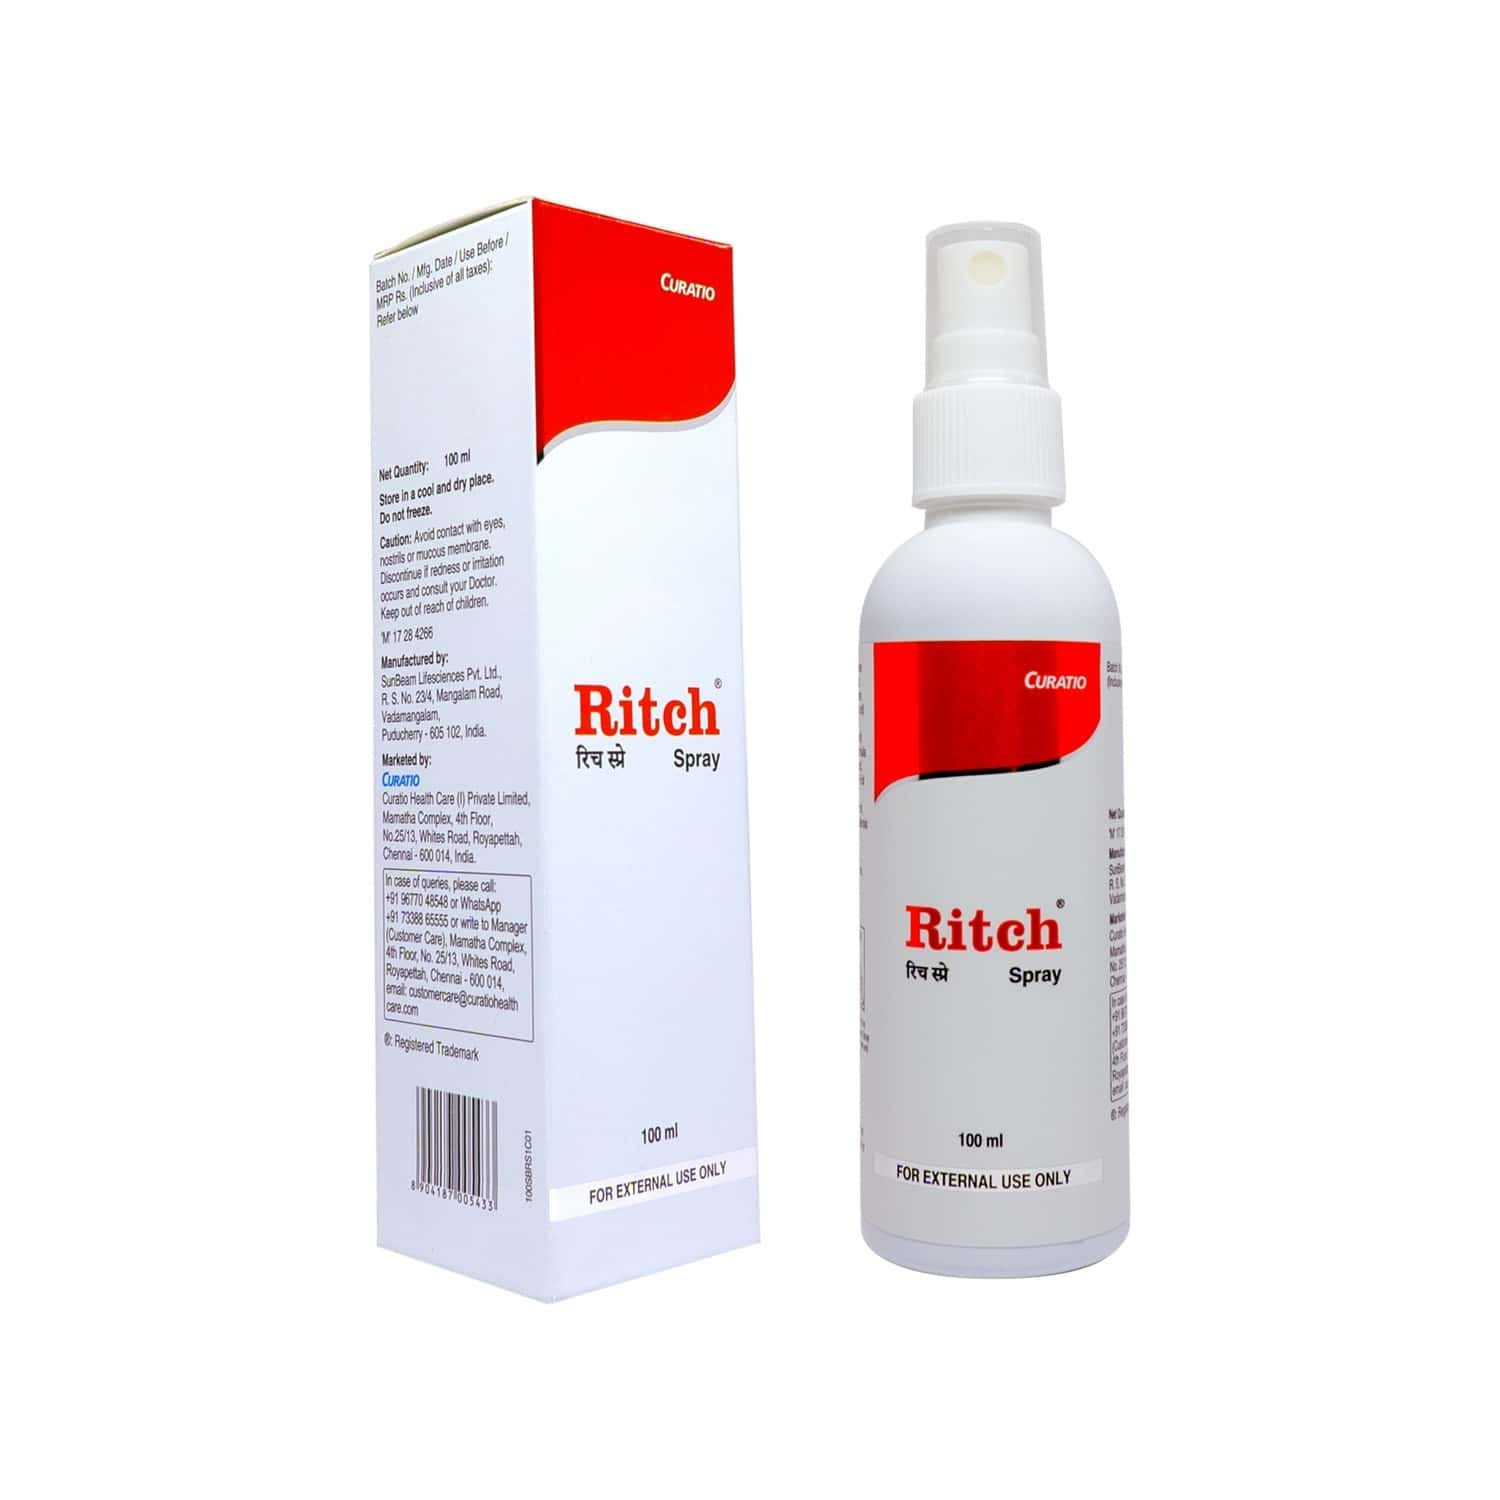 Ritch Spray - 100ml